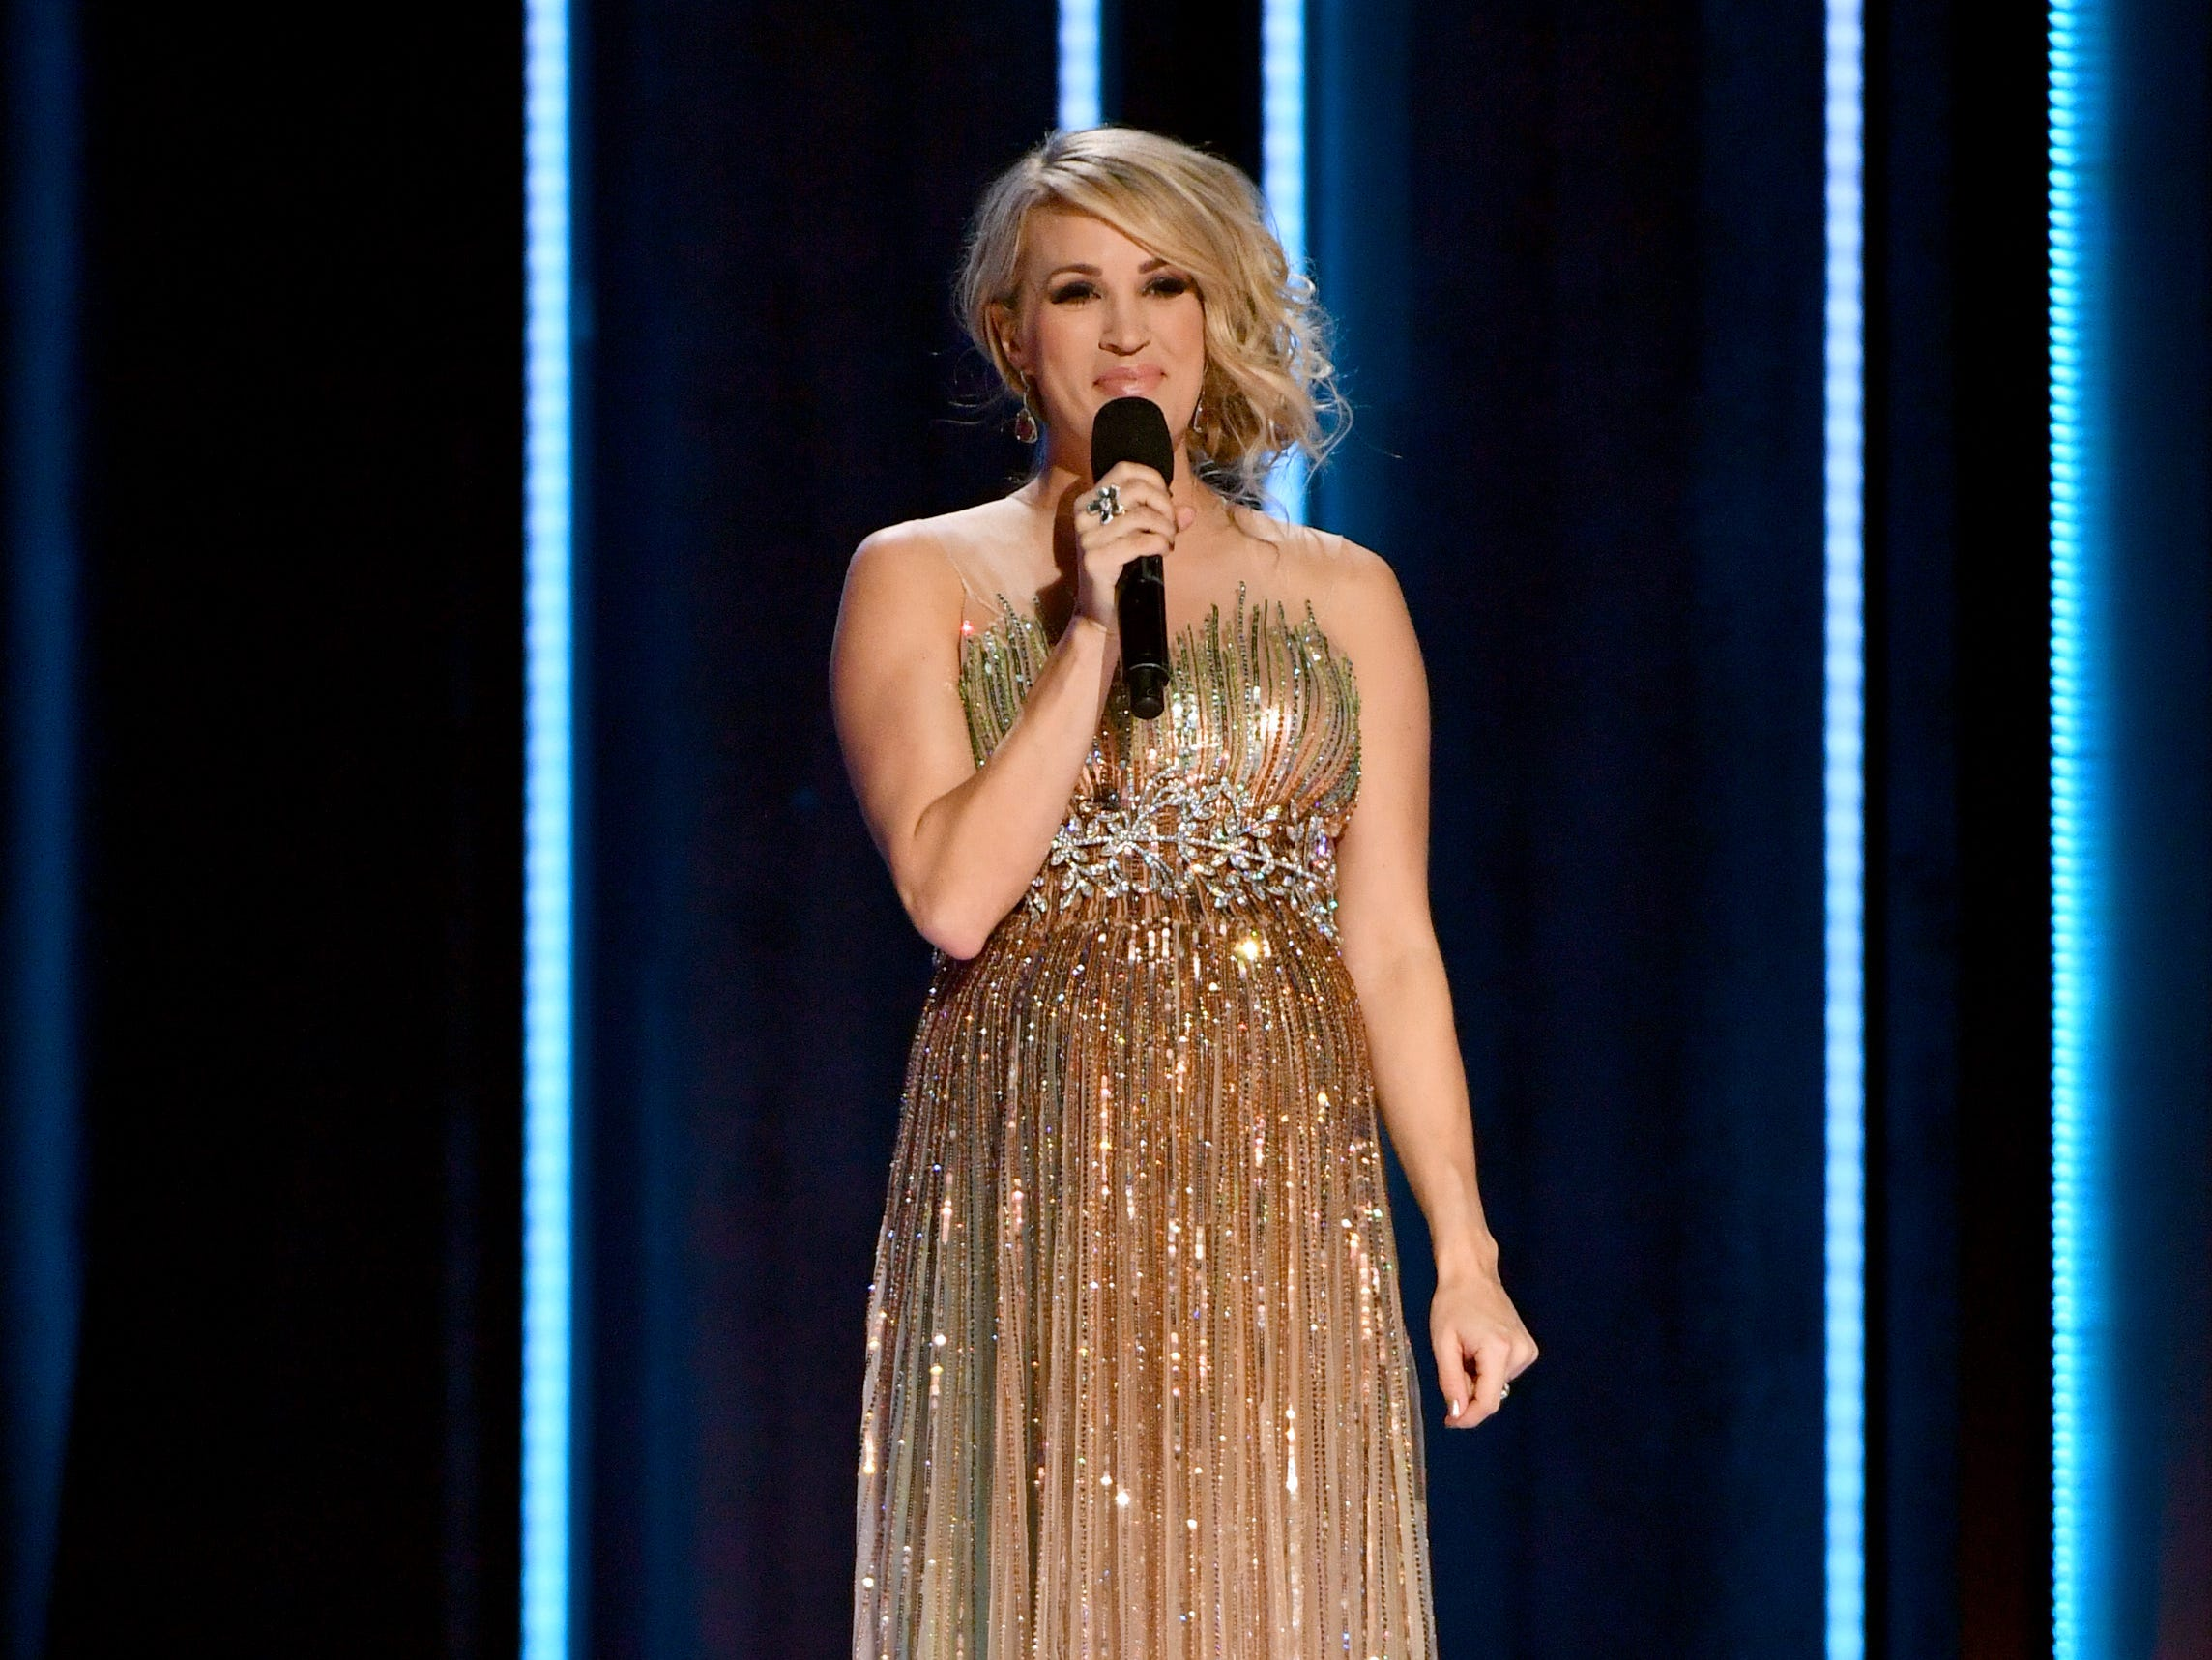 NASHVILLE, TN - NOVEMBER 14:  (FOR EDITORIAL USE ONLY) Singer Carrie Underwood speaks onstage during the 52nd annual CMA Awards at the Bridgestone Arena on November 14, 2018 in Nashville, Tennessee.  (Photo by Michael Loccisano/Getty Images) ORG XMIT: 775237563 ORIG FILE ID: 1061547476